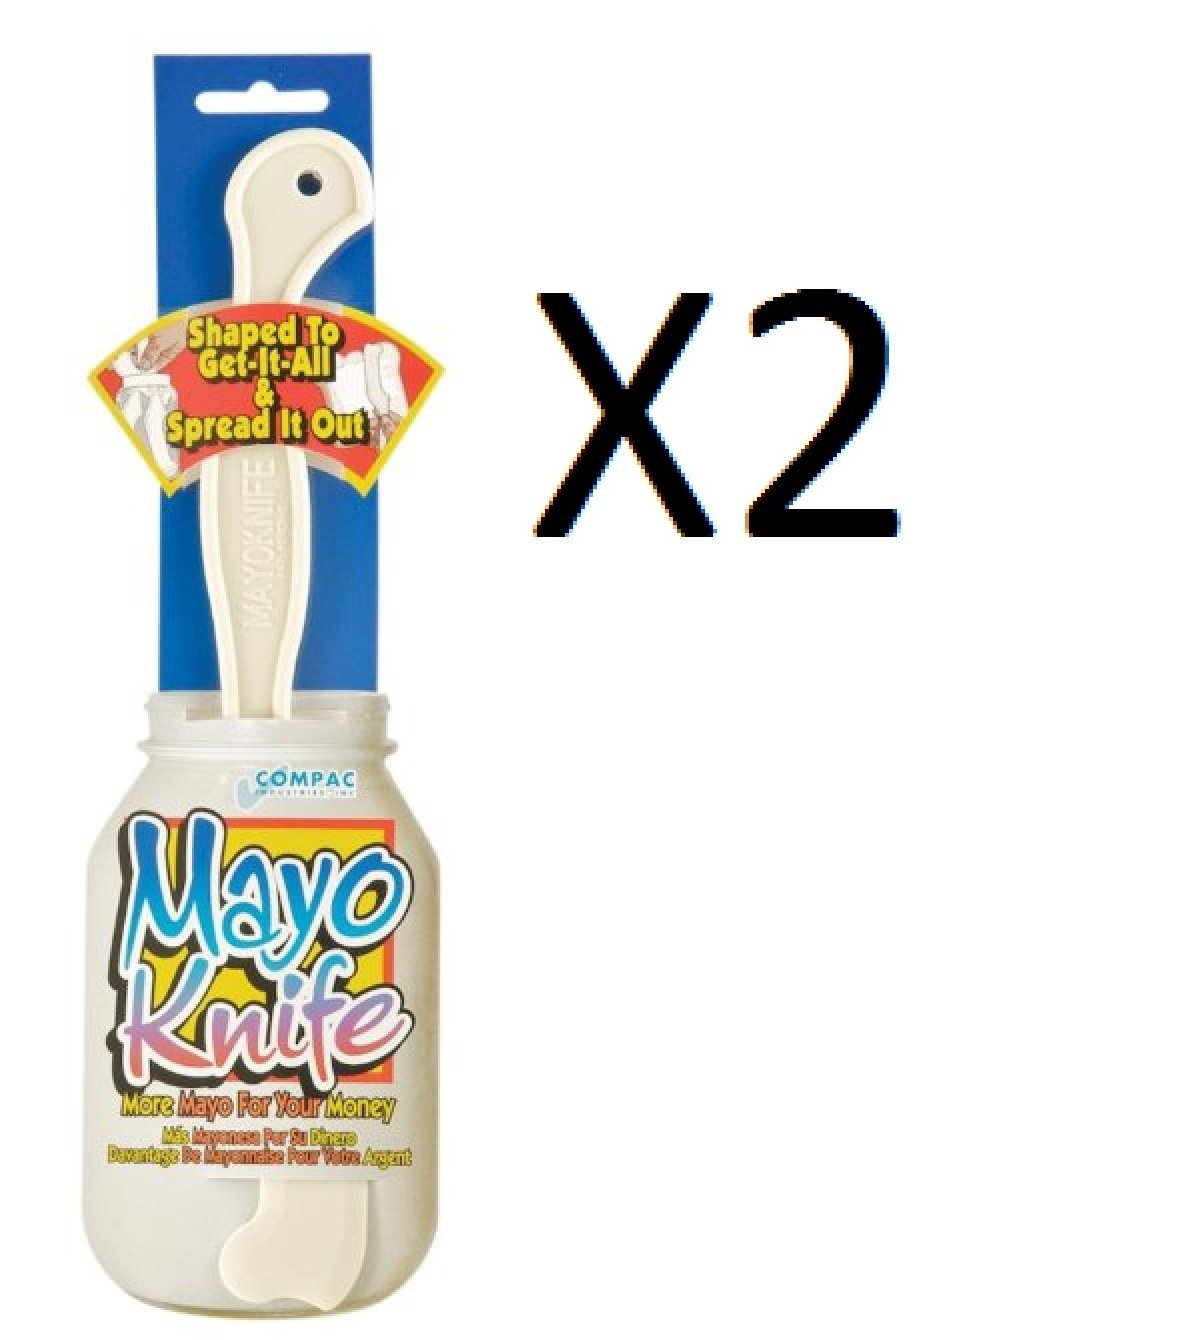 e7f2afb771f8c Cheap Mayo Shoes, find Mayo Shoes deals on line at Alibaba.com